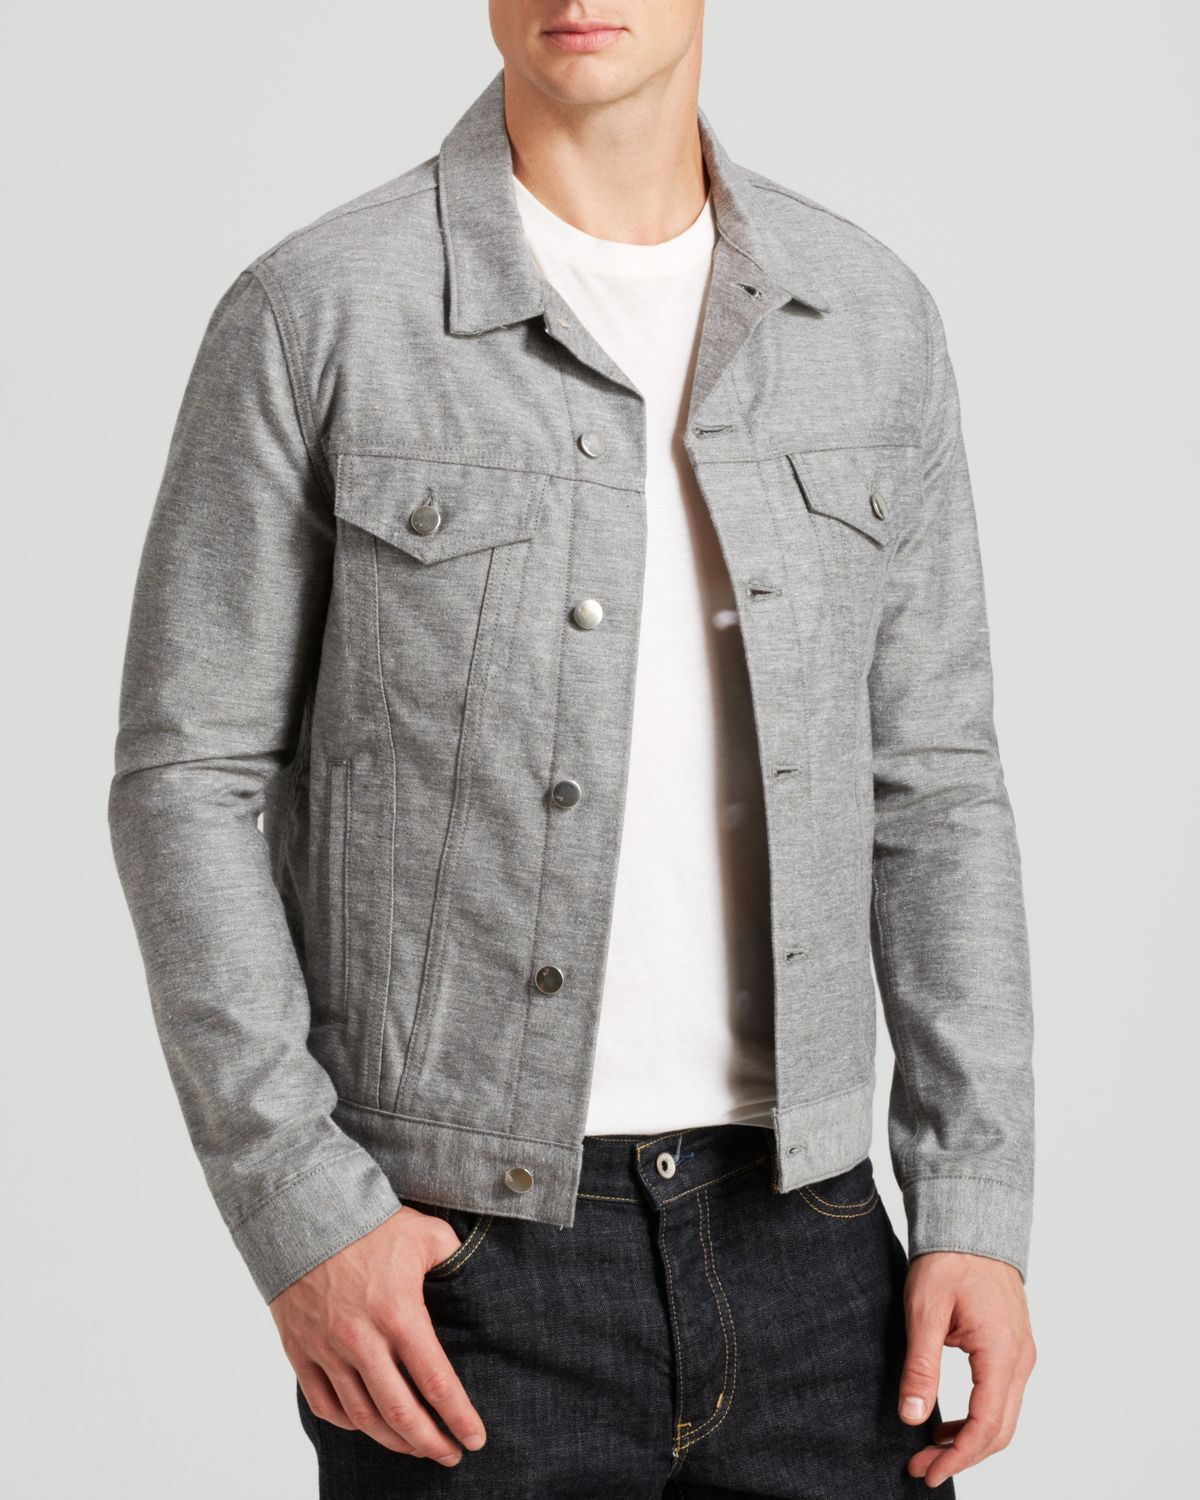 Lyst - J Brand Denim Jacket in Gray for Men